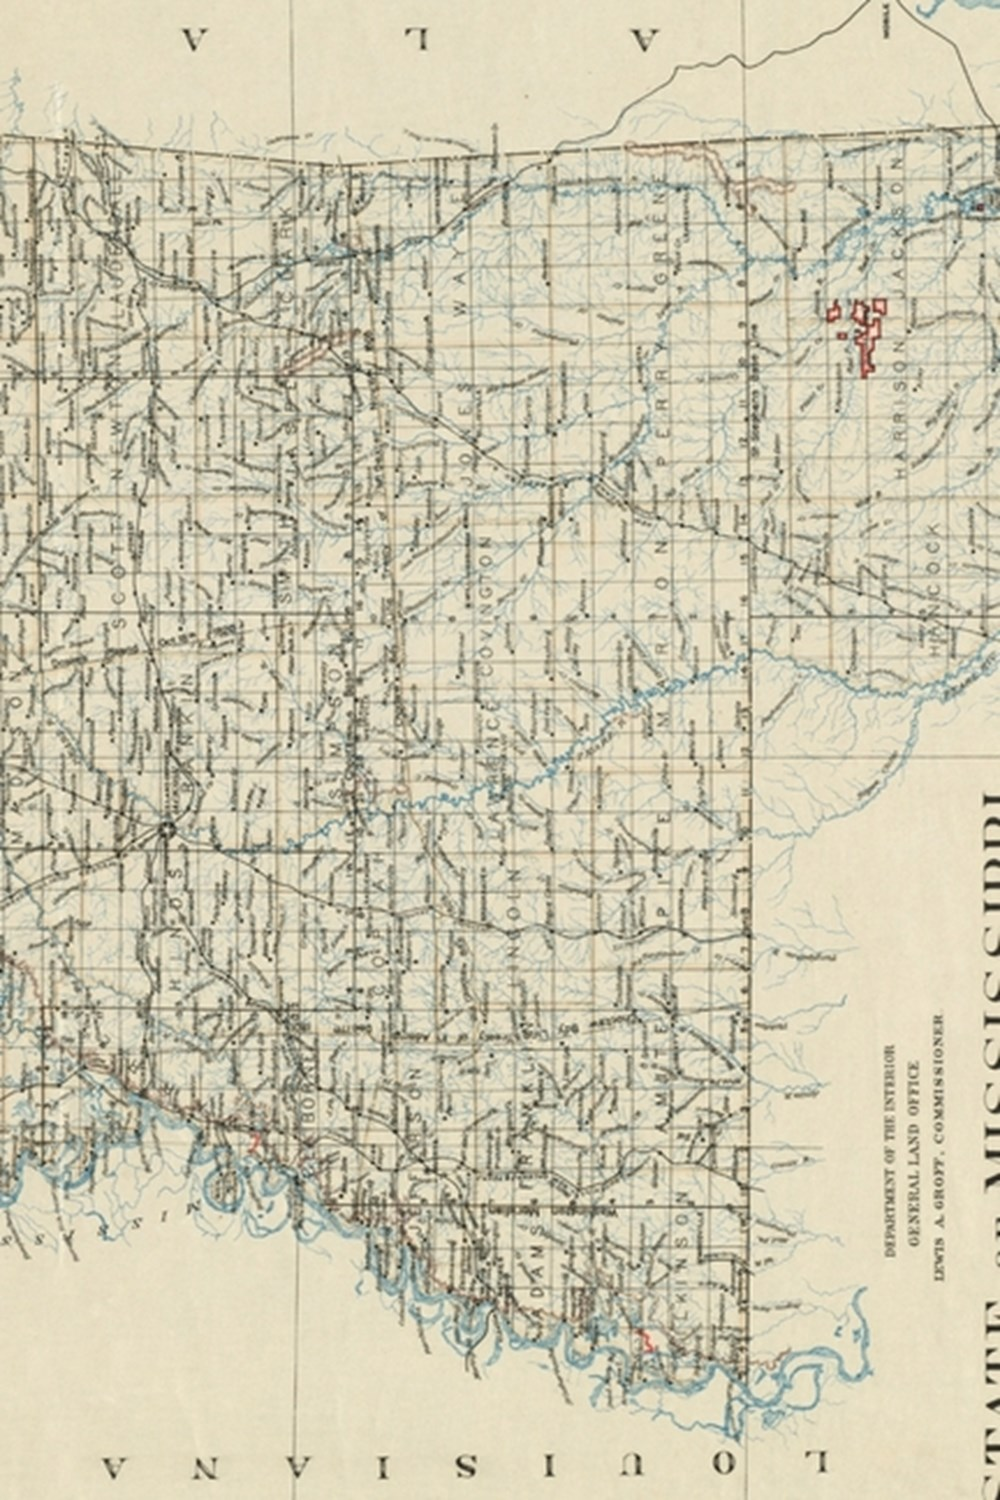 1890 Map of the State of Mississippi - A Poetose Notebook / Journal / Diary (50 pages/25 sheets)